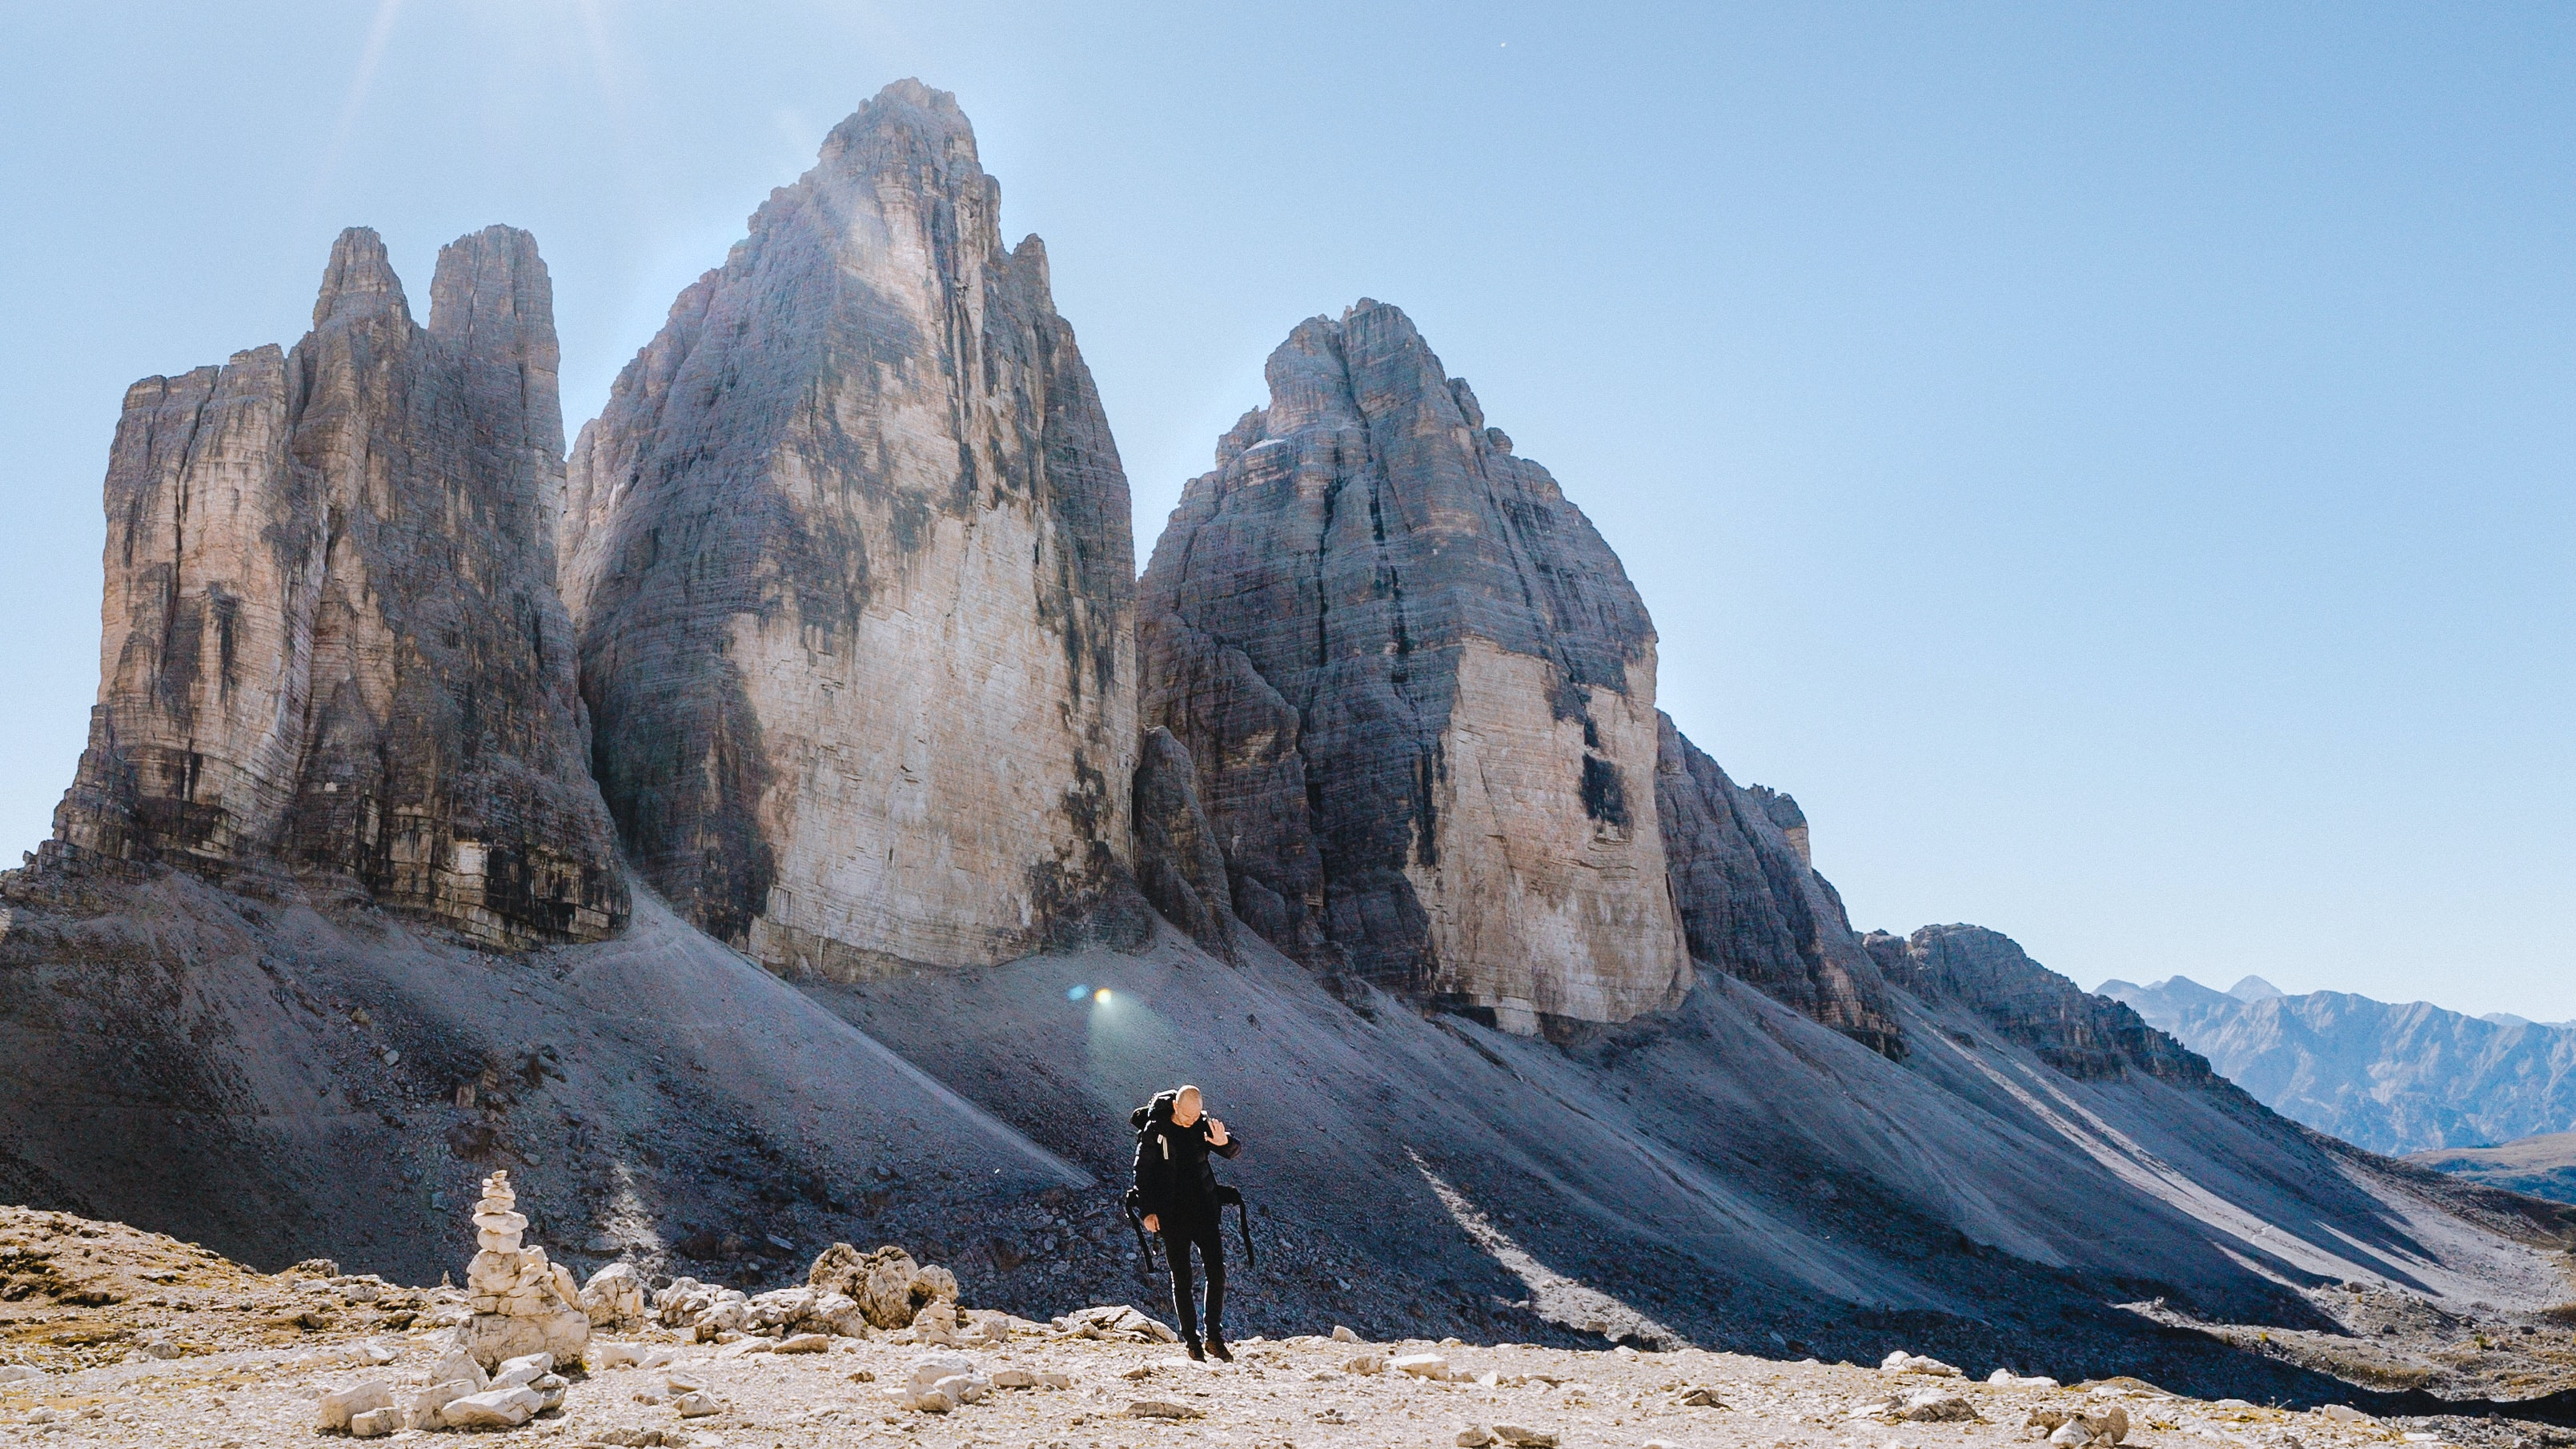 dolomites mountains in Italy